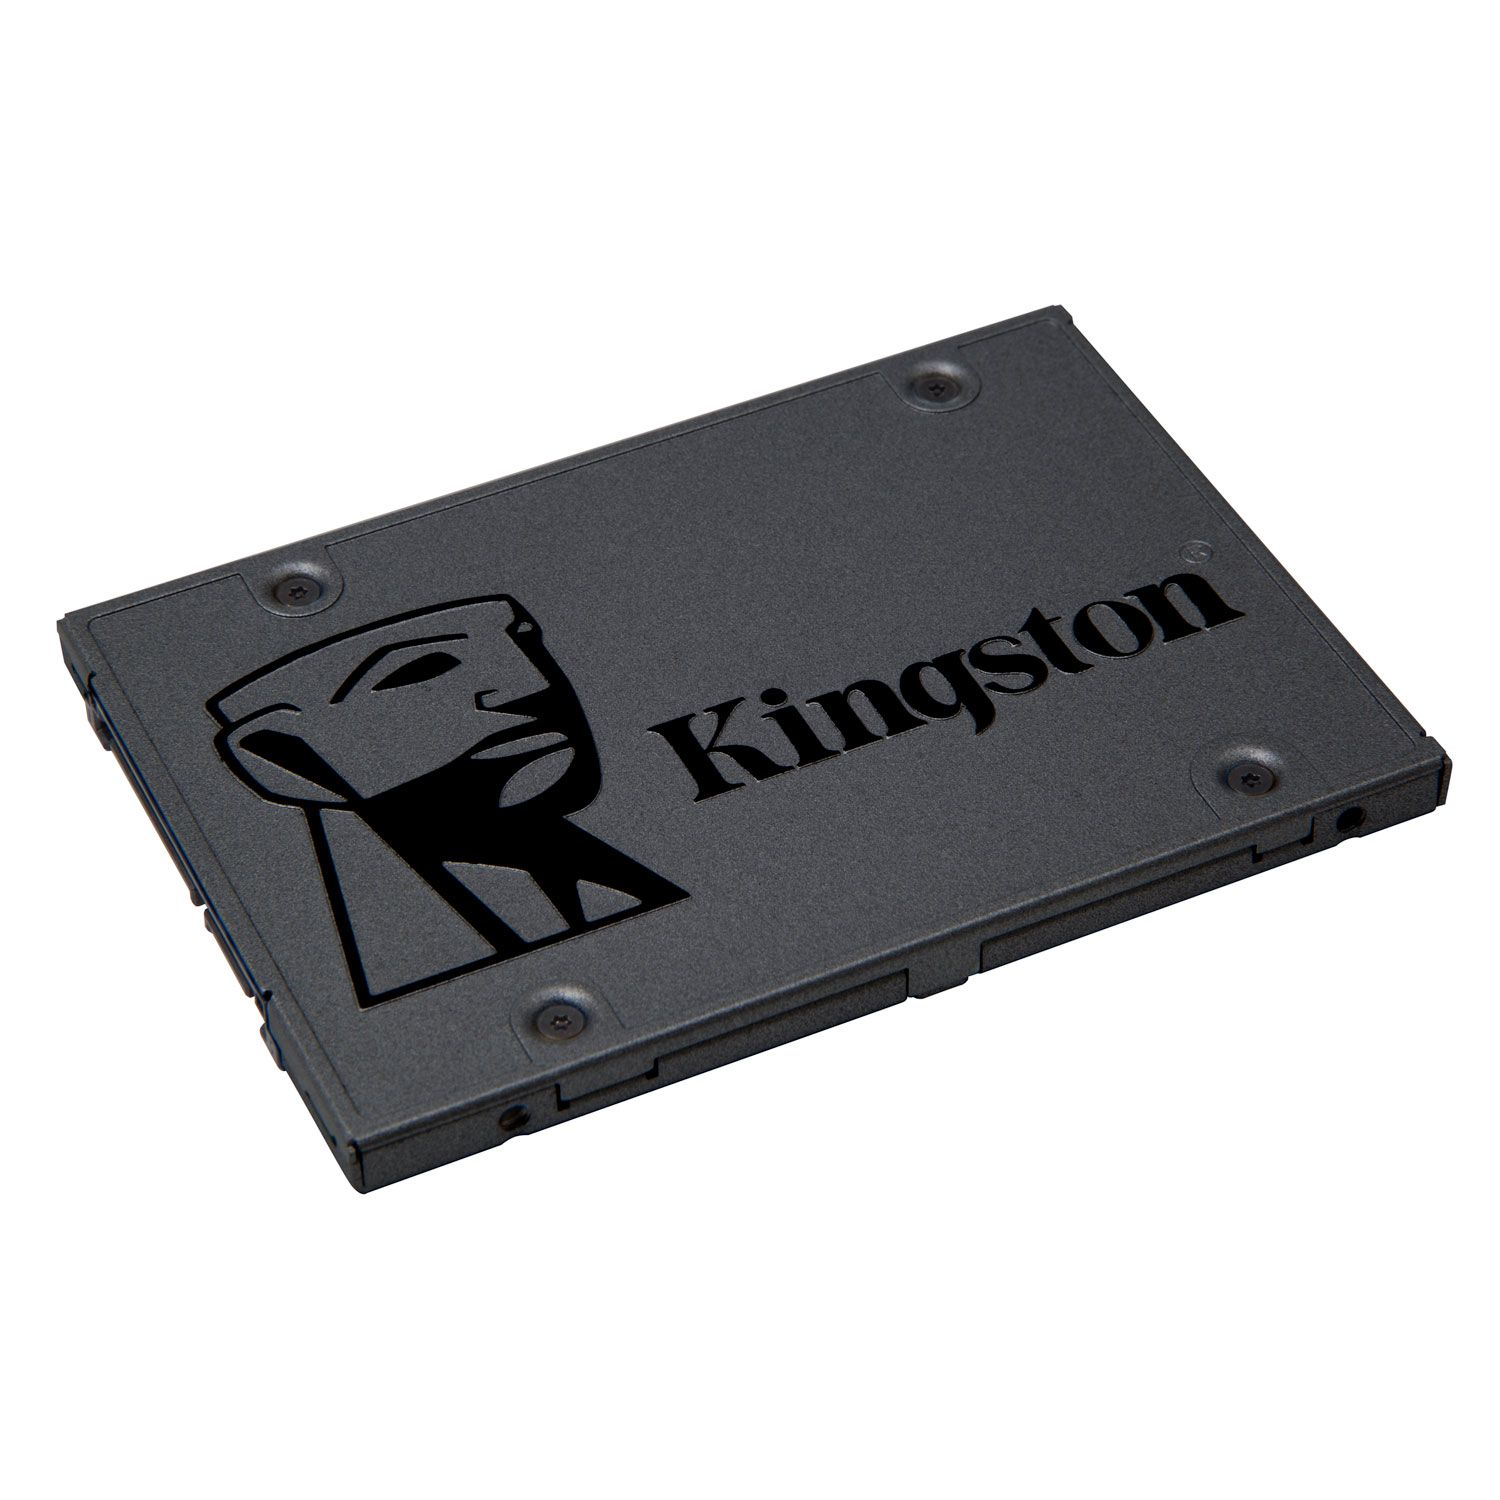 Memória Kingston SSD Plus 240GB A400 500Mb/s